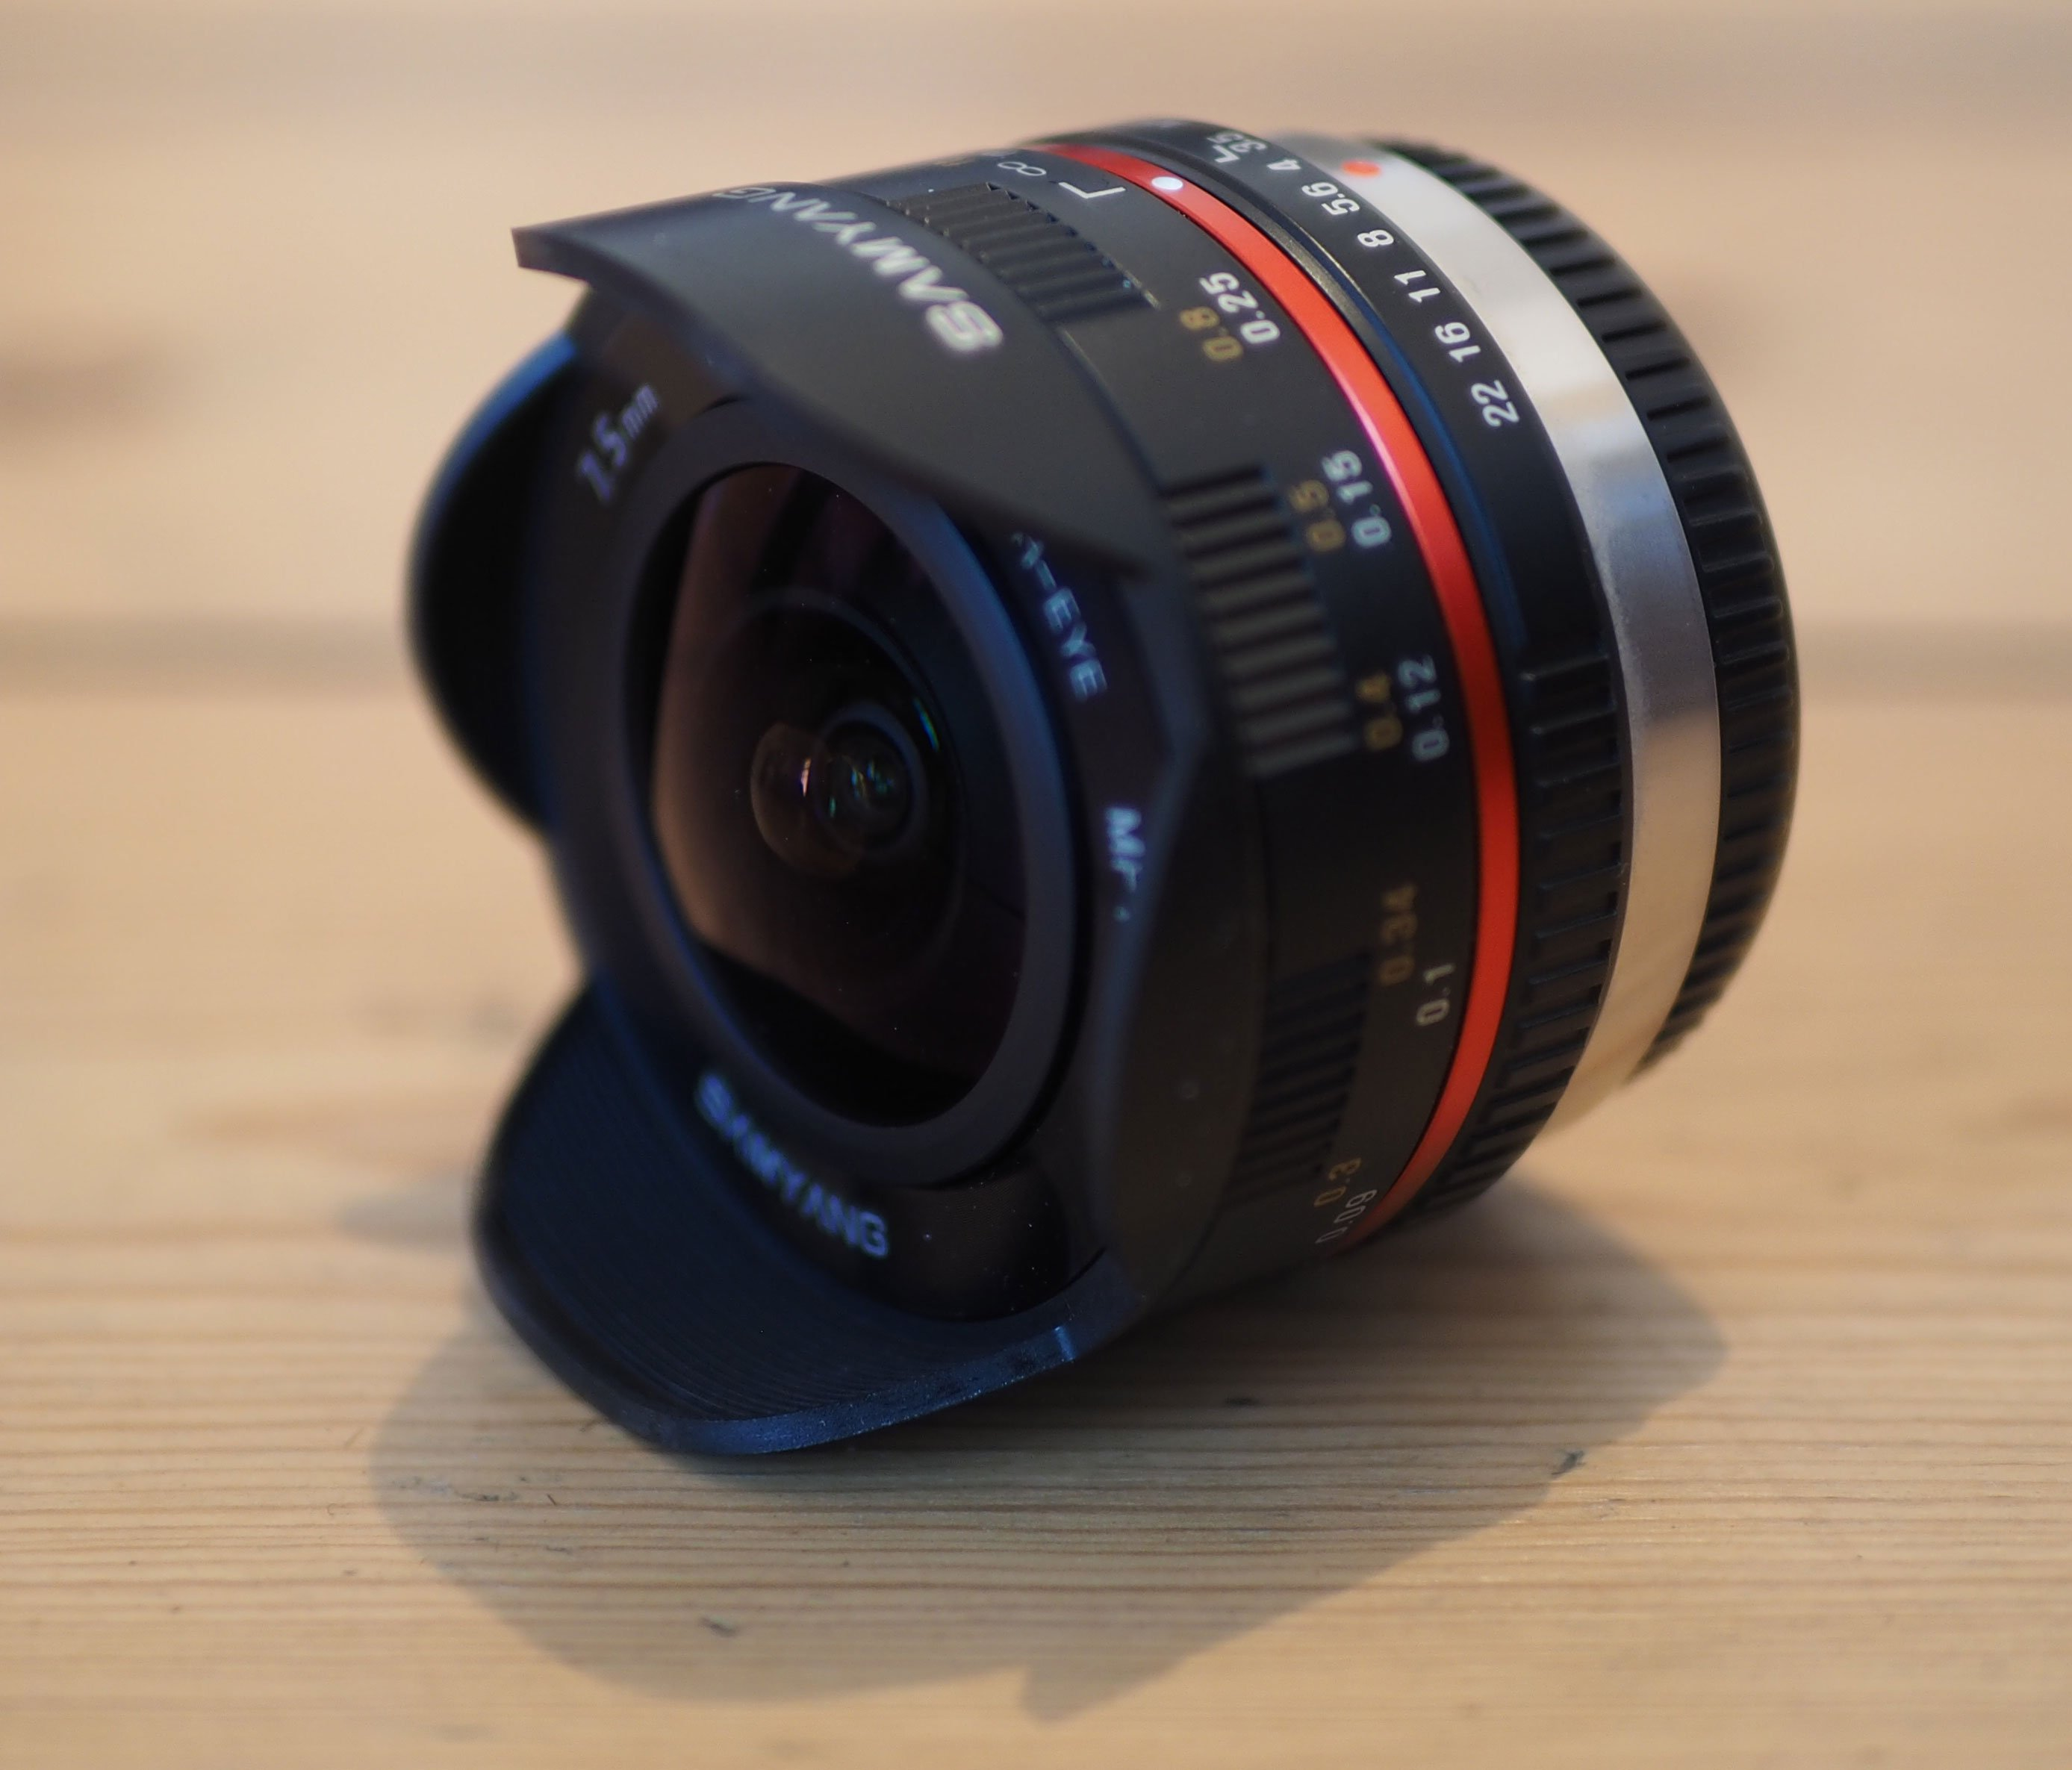 Samyang 7.5mm fisheye